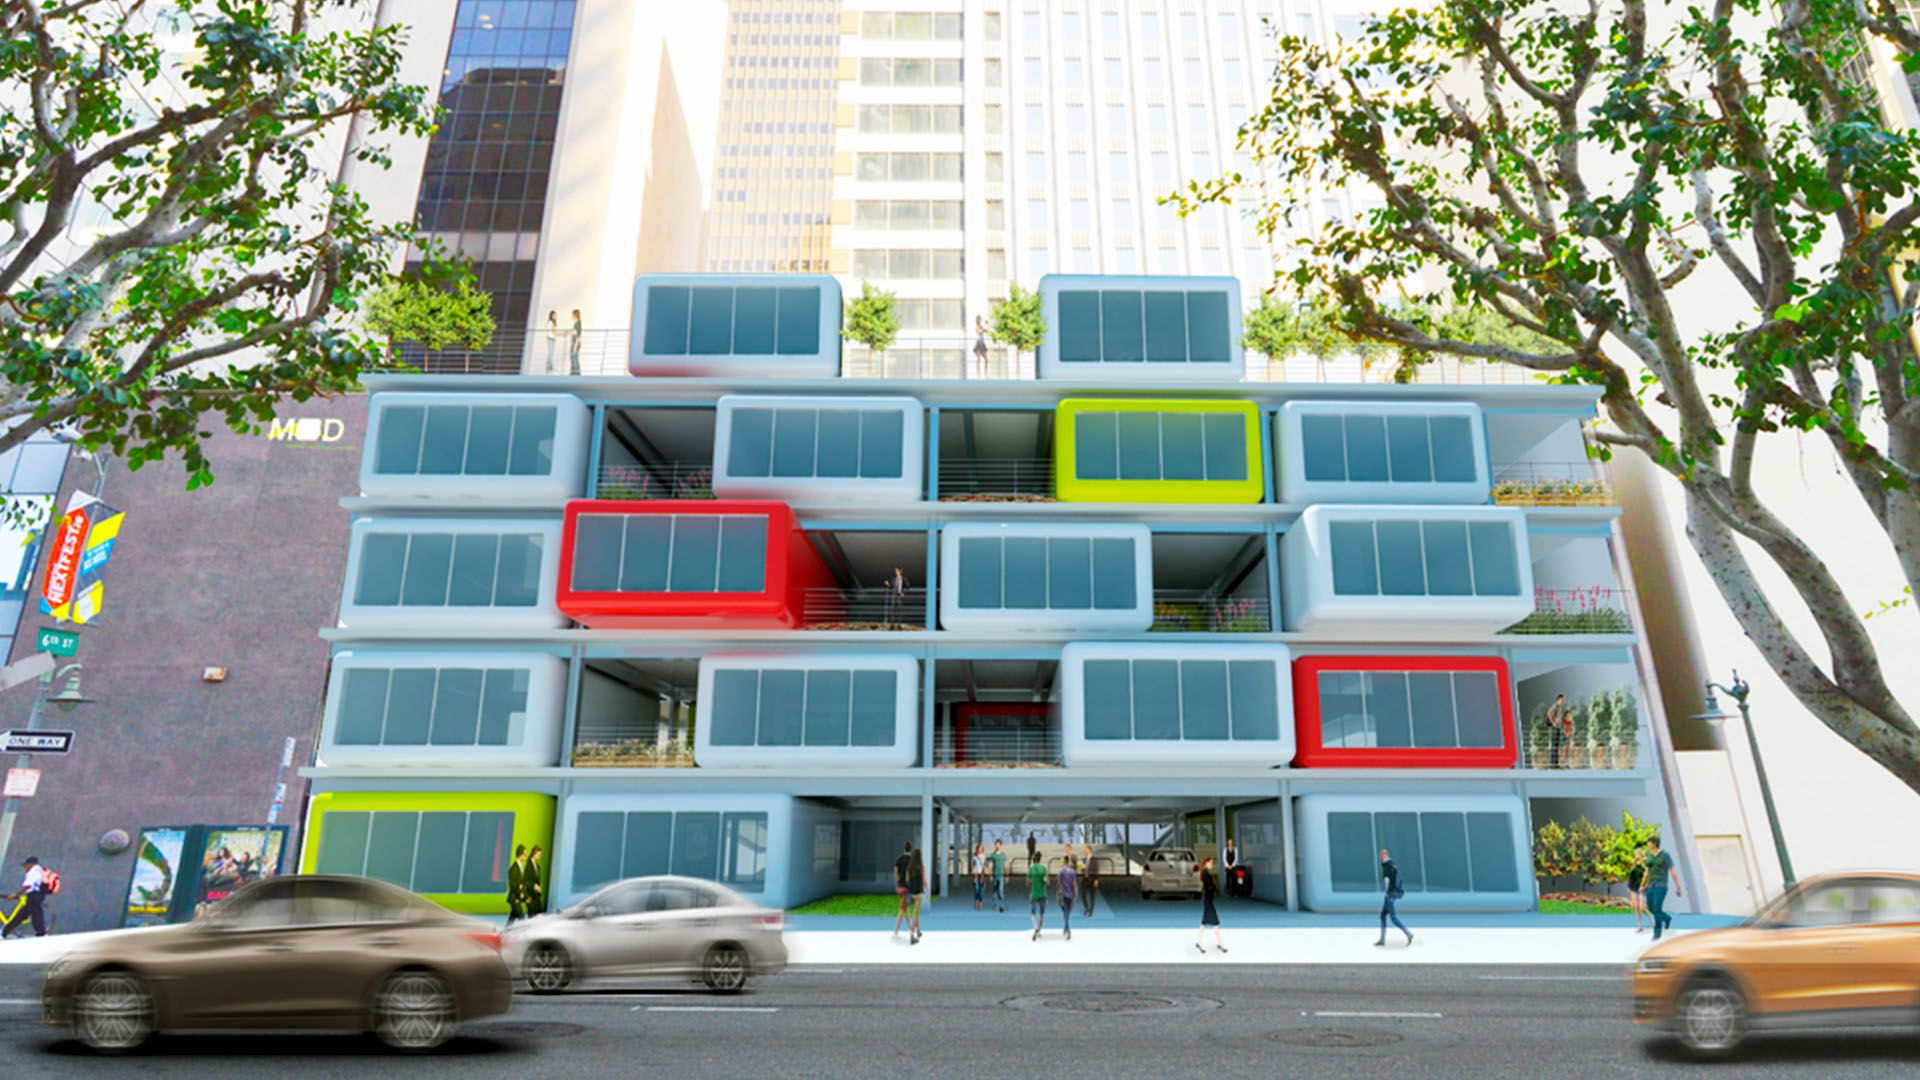 Architectural rendering of a repurposed parking garage